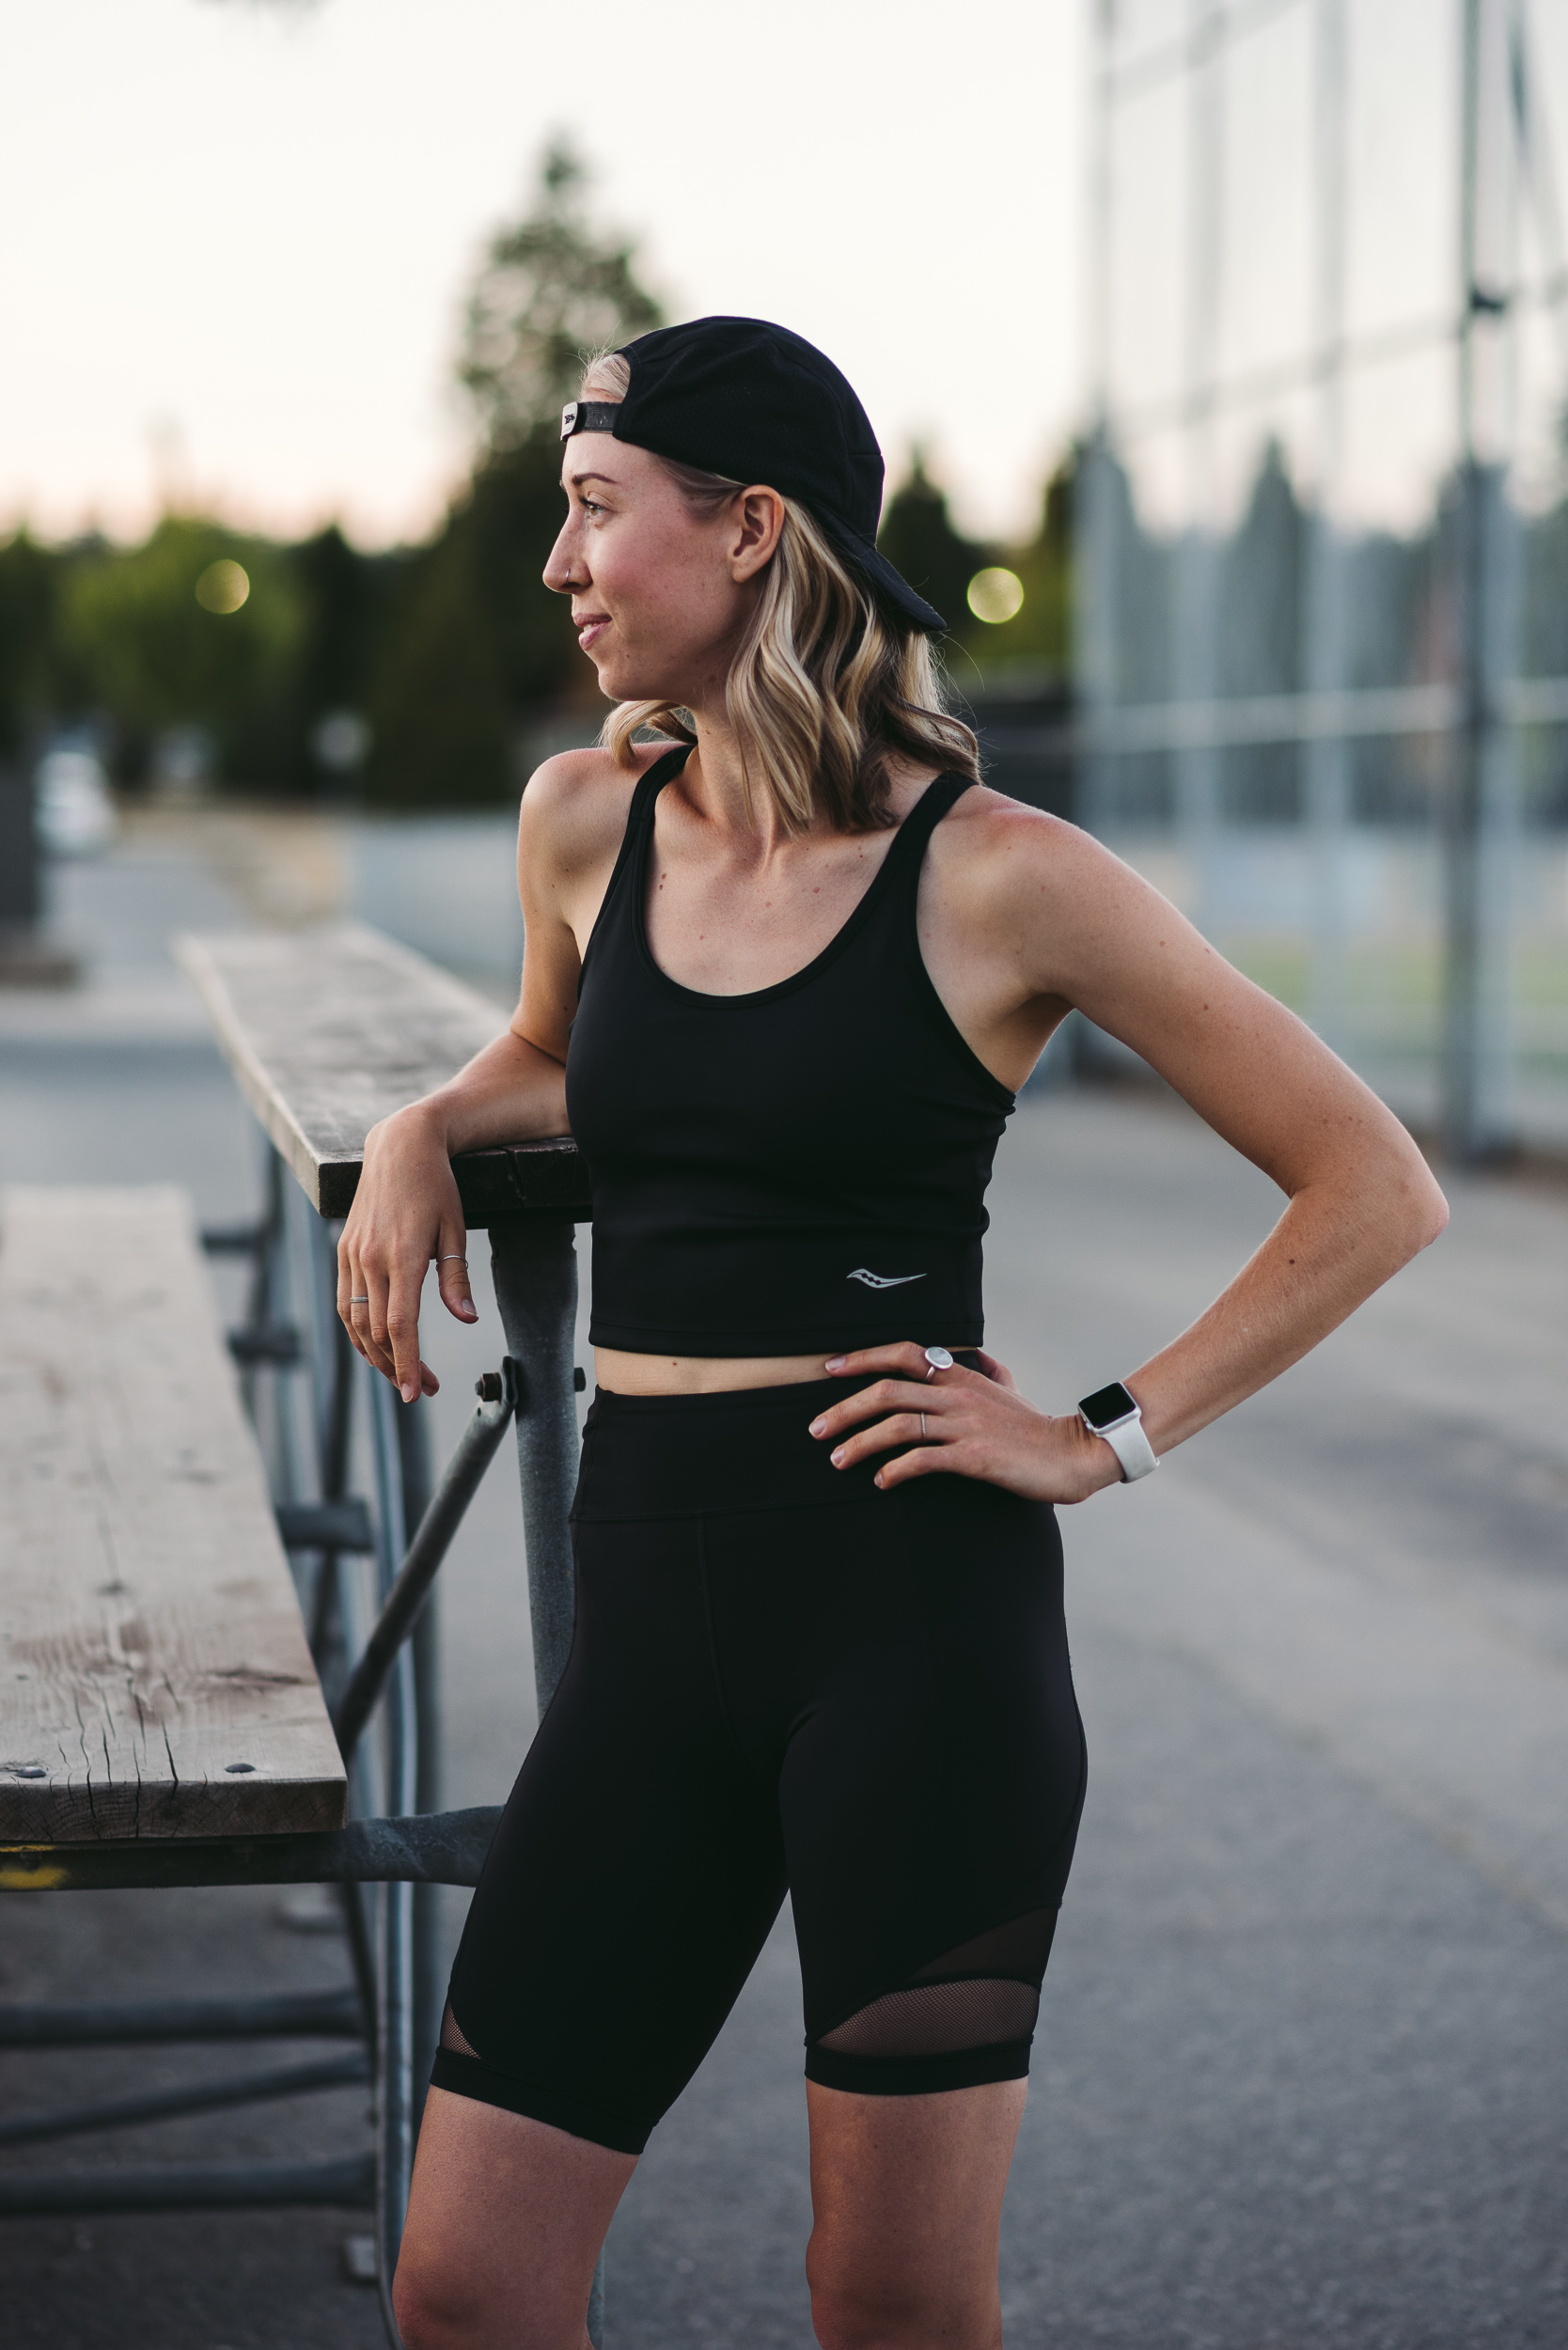 Mint Club Athletics founder, Sara, leaning again stadium benches and smiling